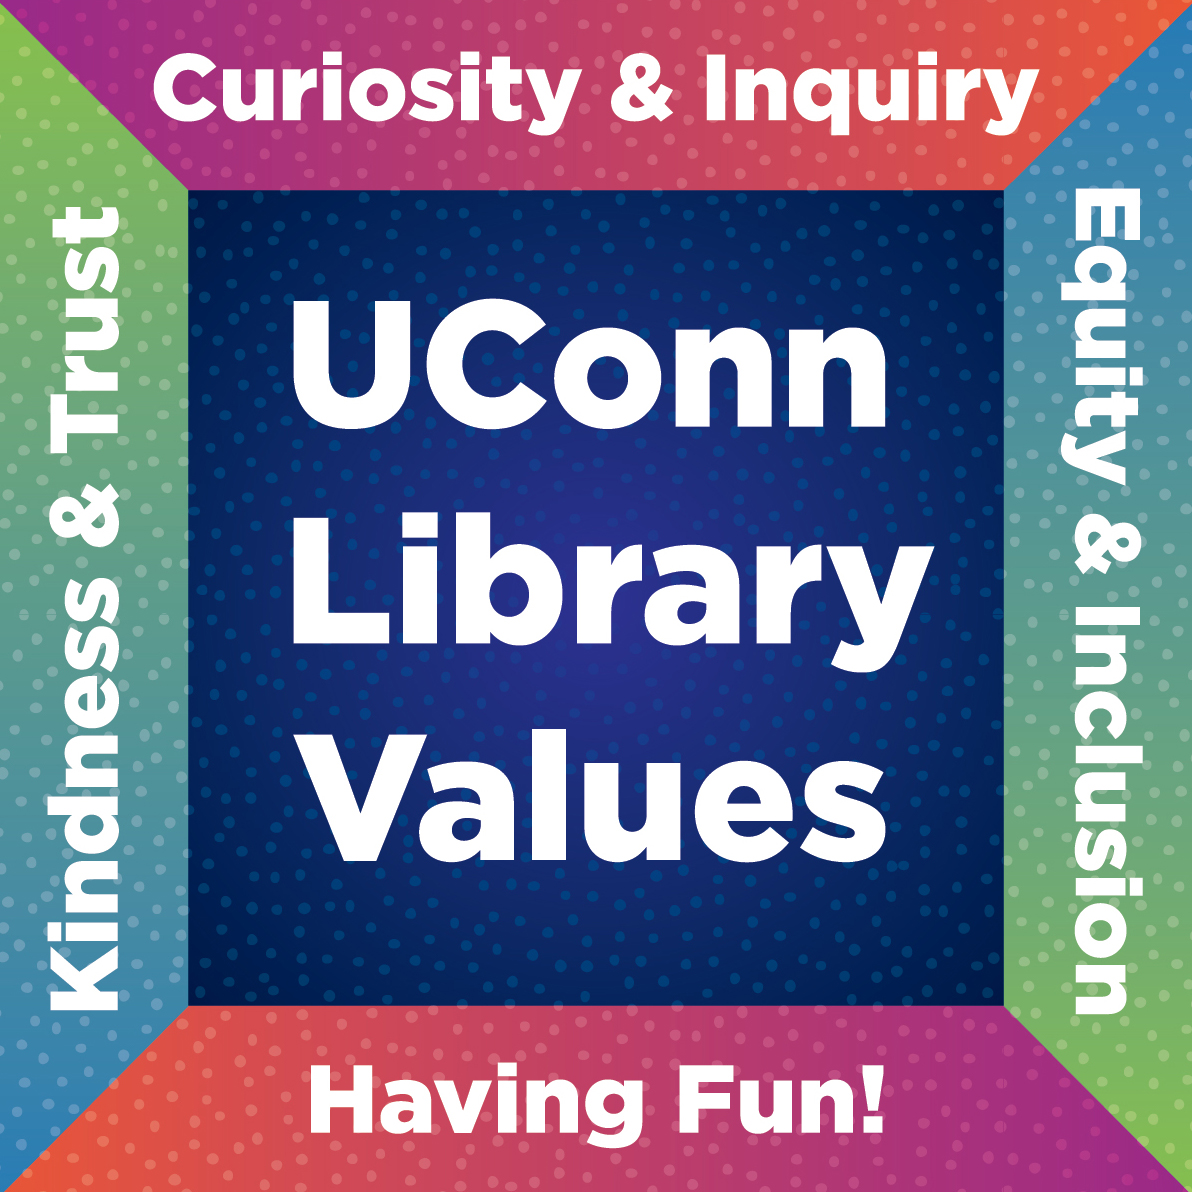 Uconn Library Values icon